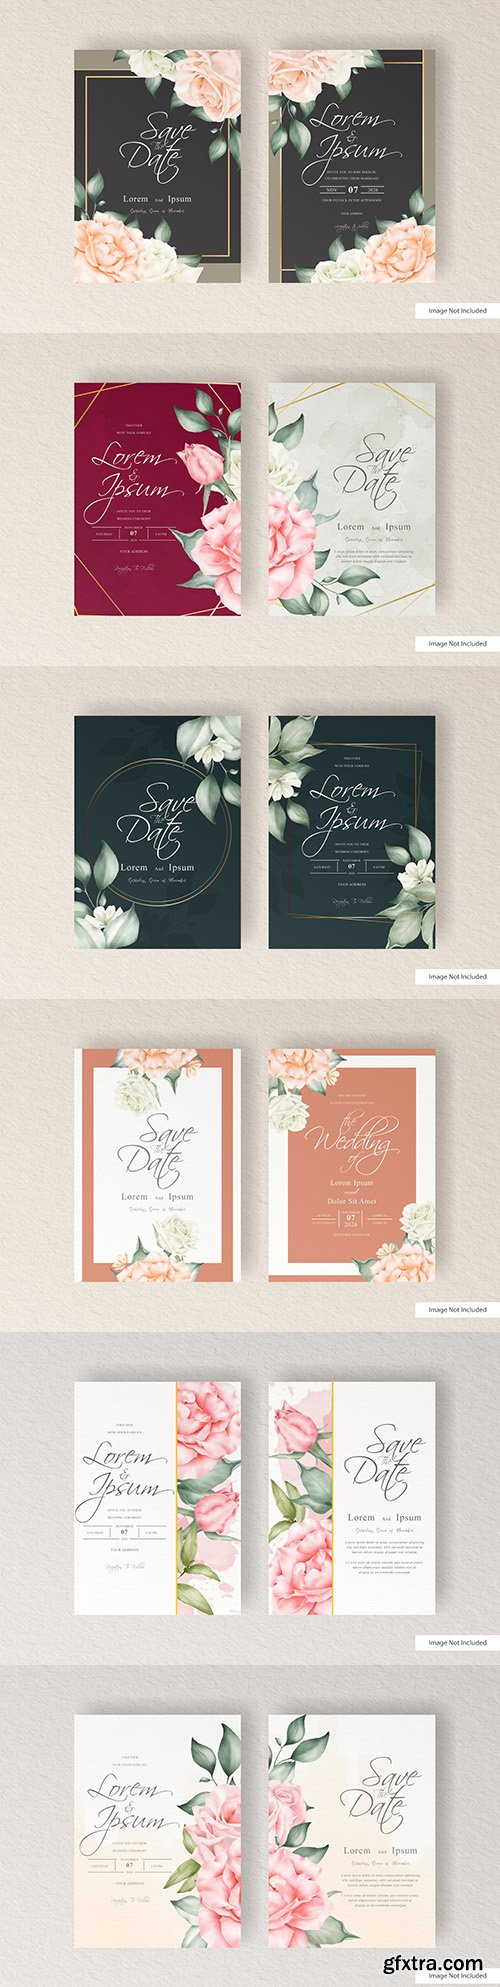 Elegant wedding invitation template with watercolors and flowers